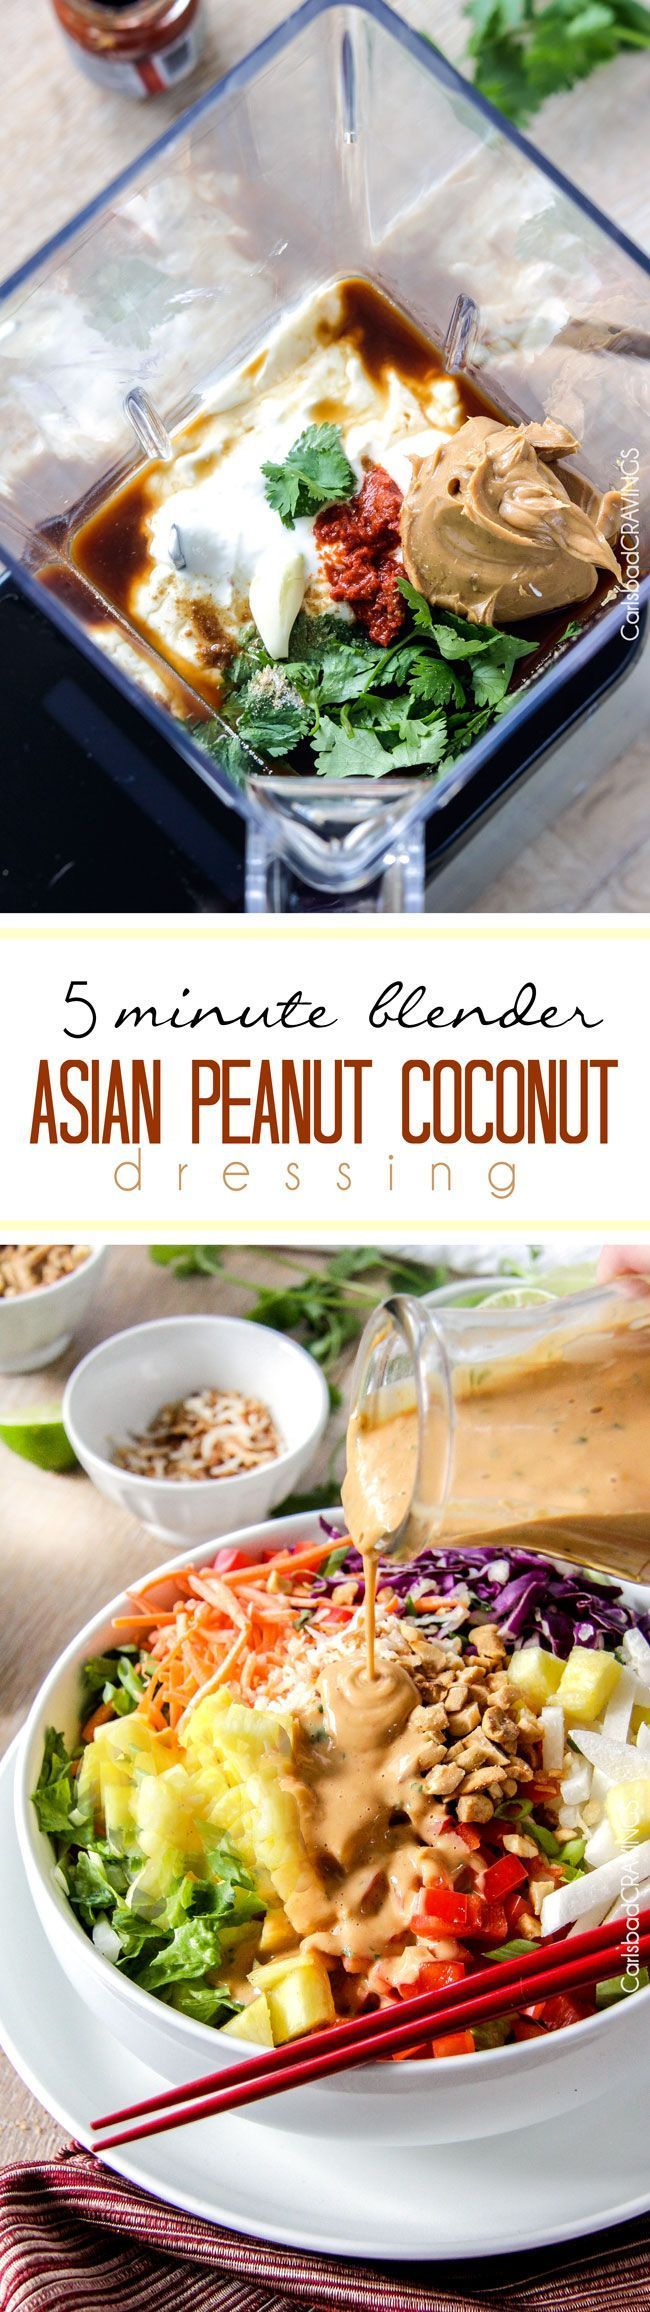 5 Minute Blender Asian Peanut Coconut Dressing is so ridiculously delicious you will want to put it on everything!